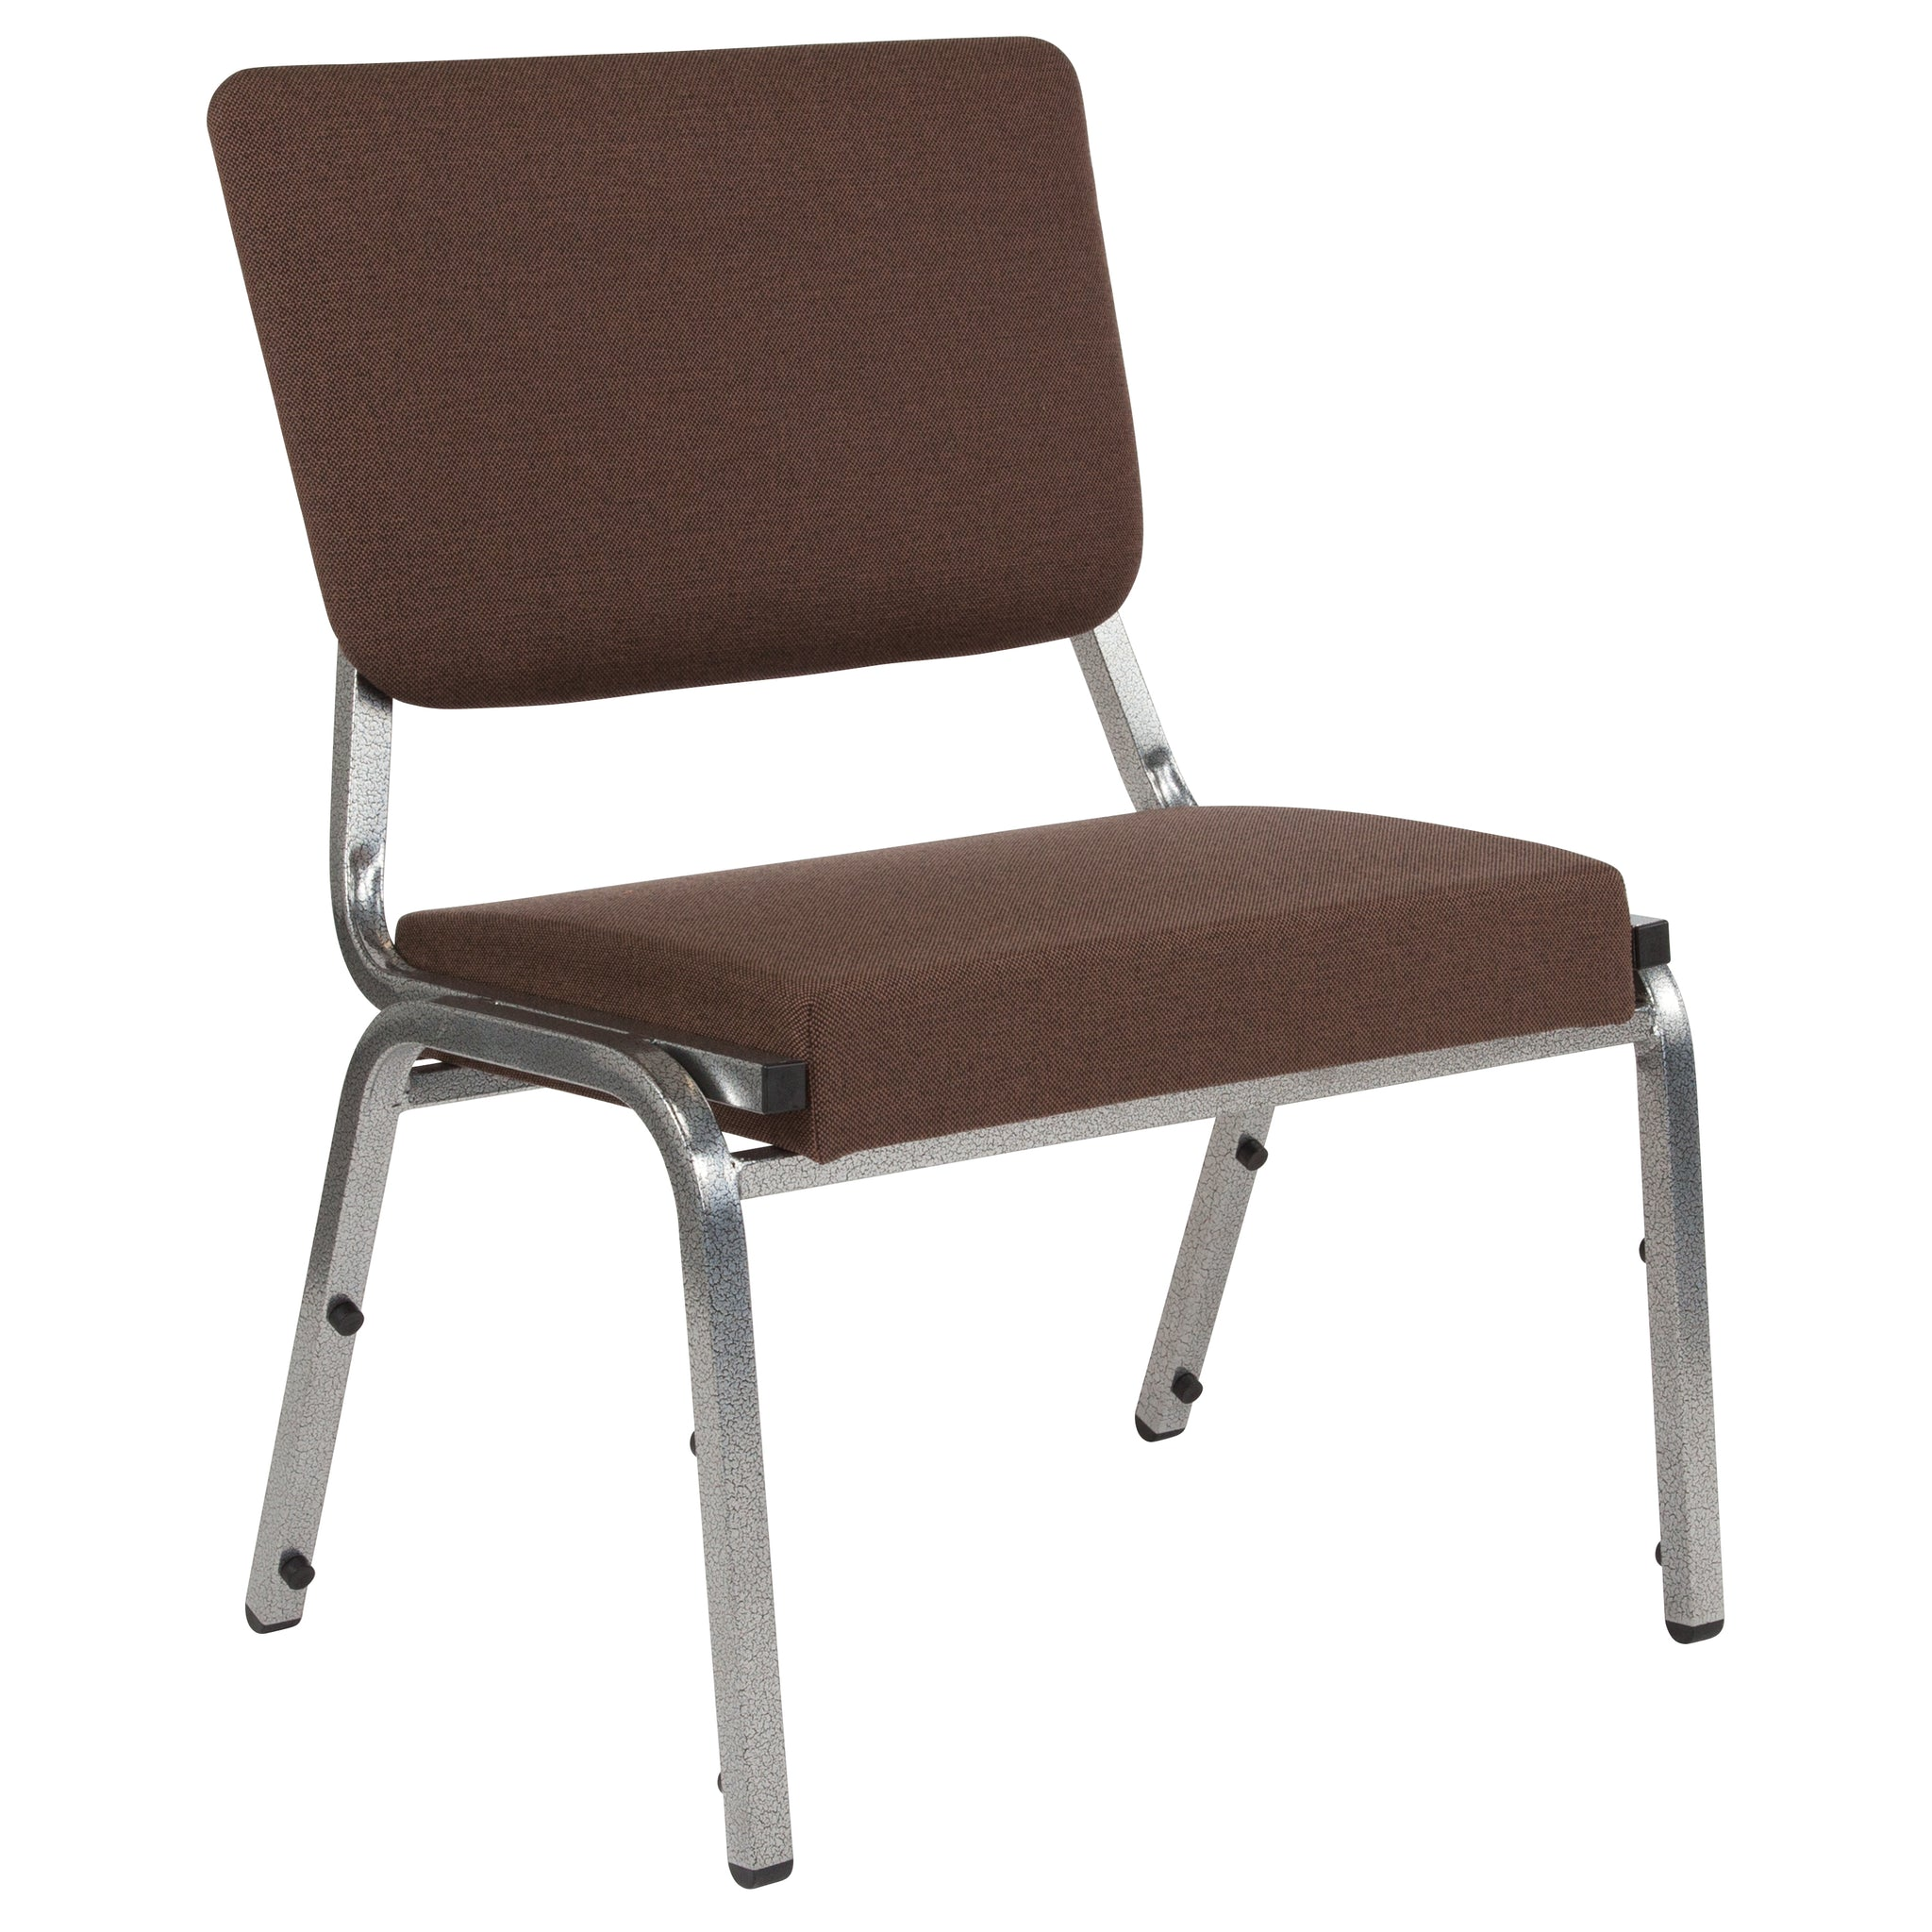 HERCULES Series 1500 lb. Rated Brown Antimicrobial Fabric Bariatric Chair with 3/4 Panel Back and Silver Vein Frame